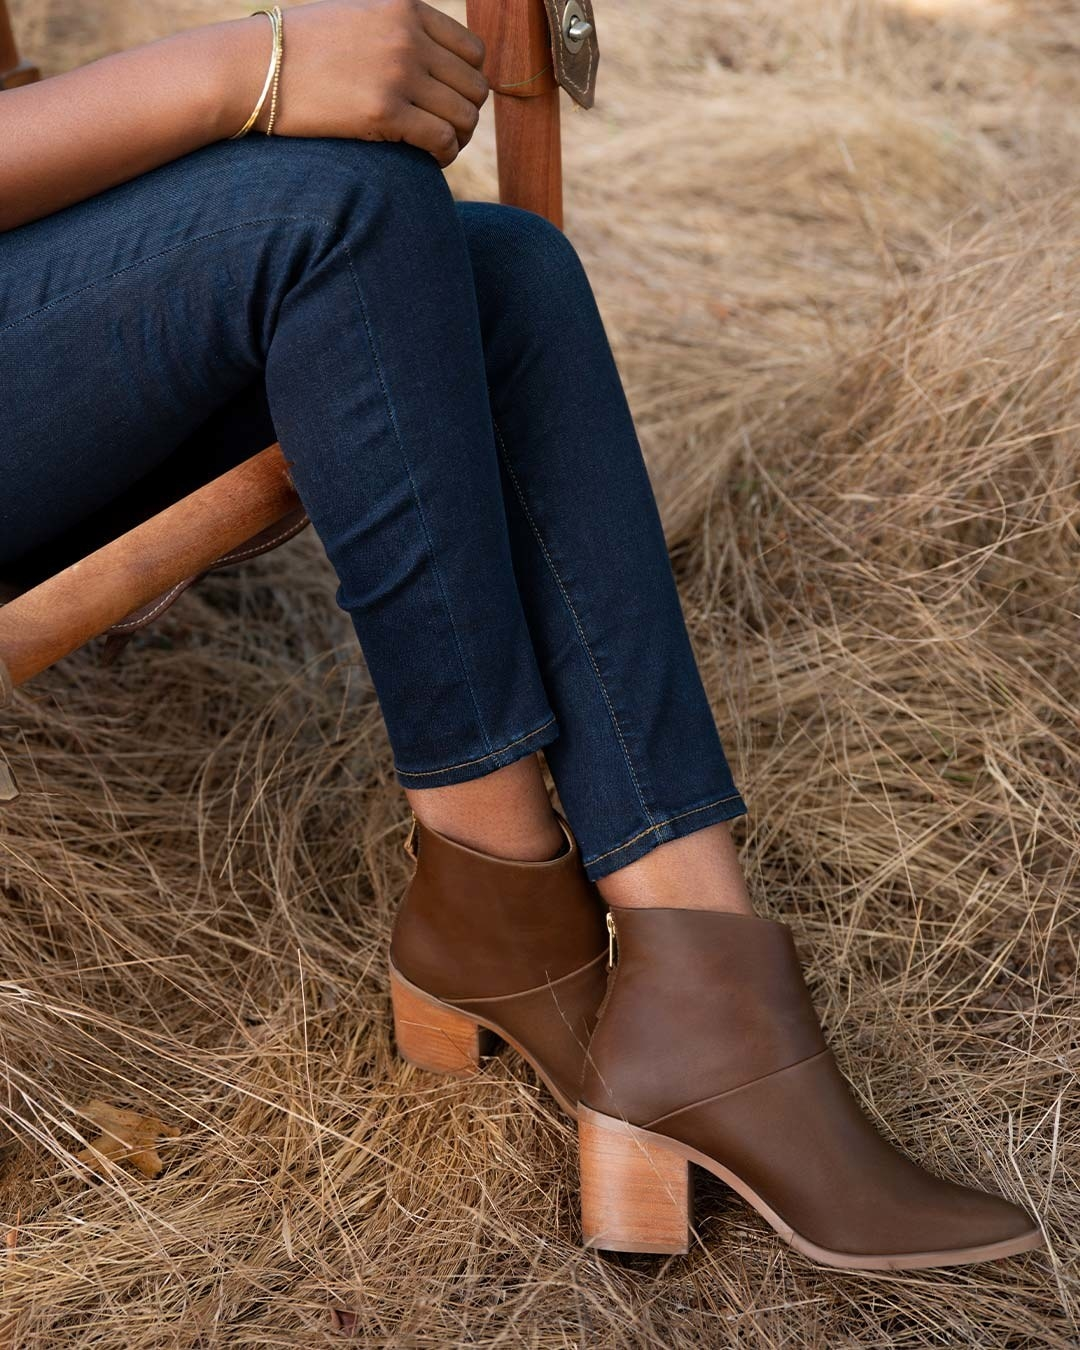 A model in brown stacked heel ankle boots